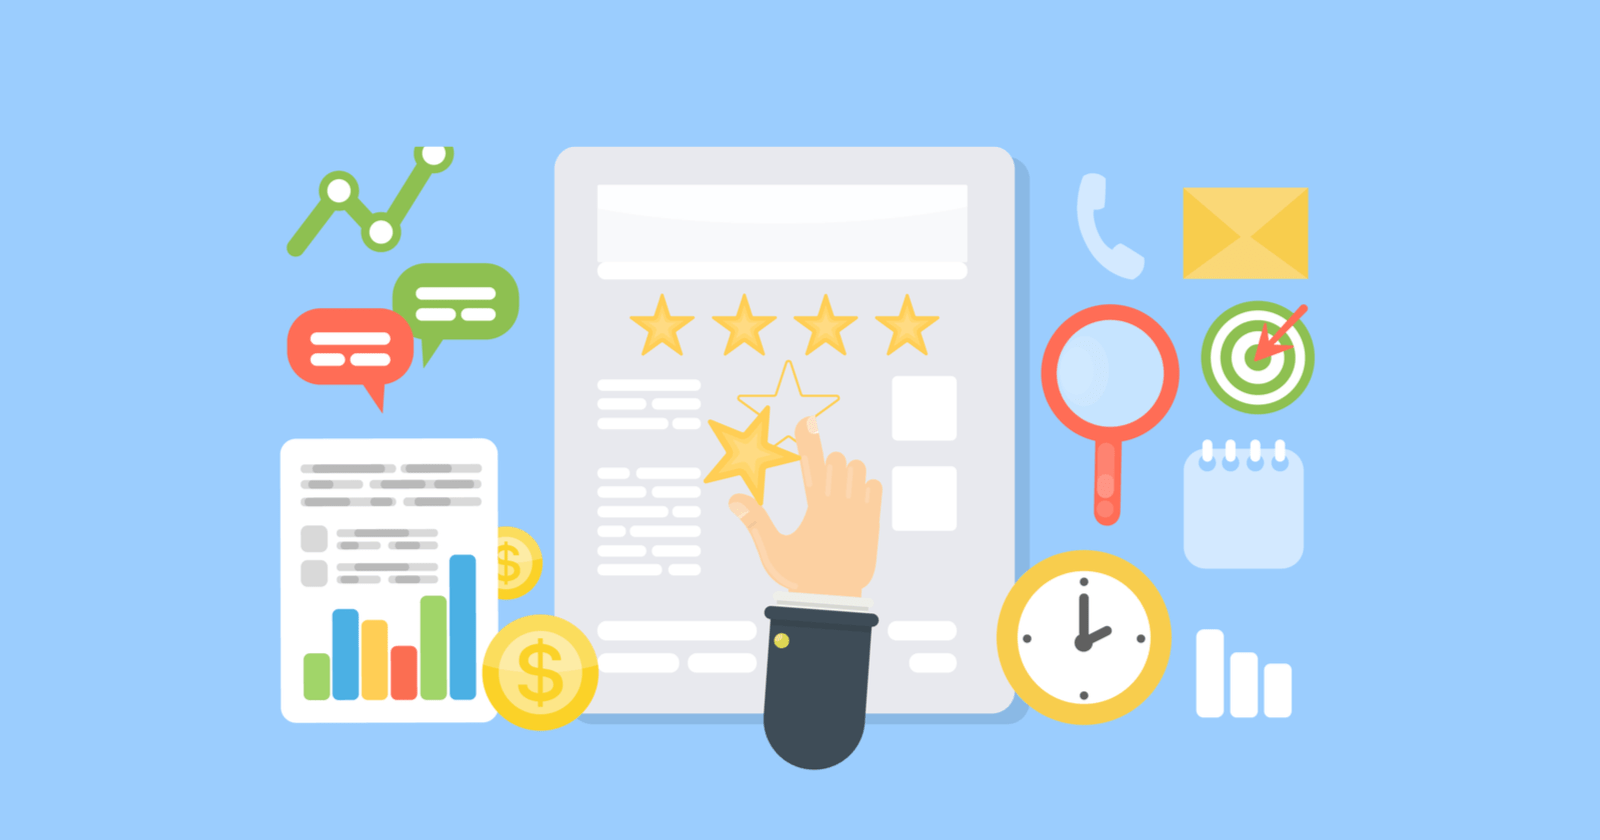 Online Reputation Management Tools Every Business Owner Needs